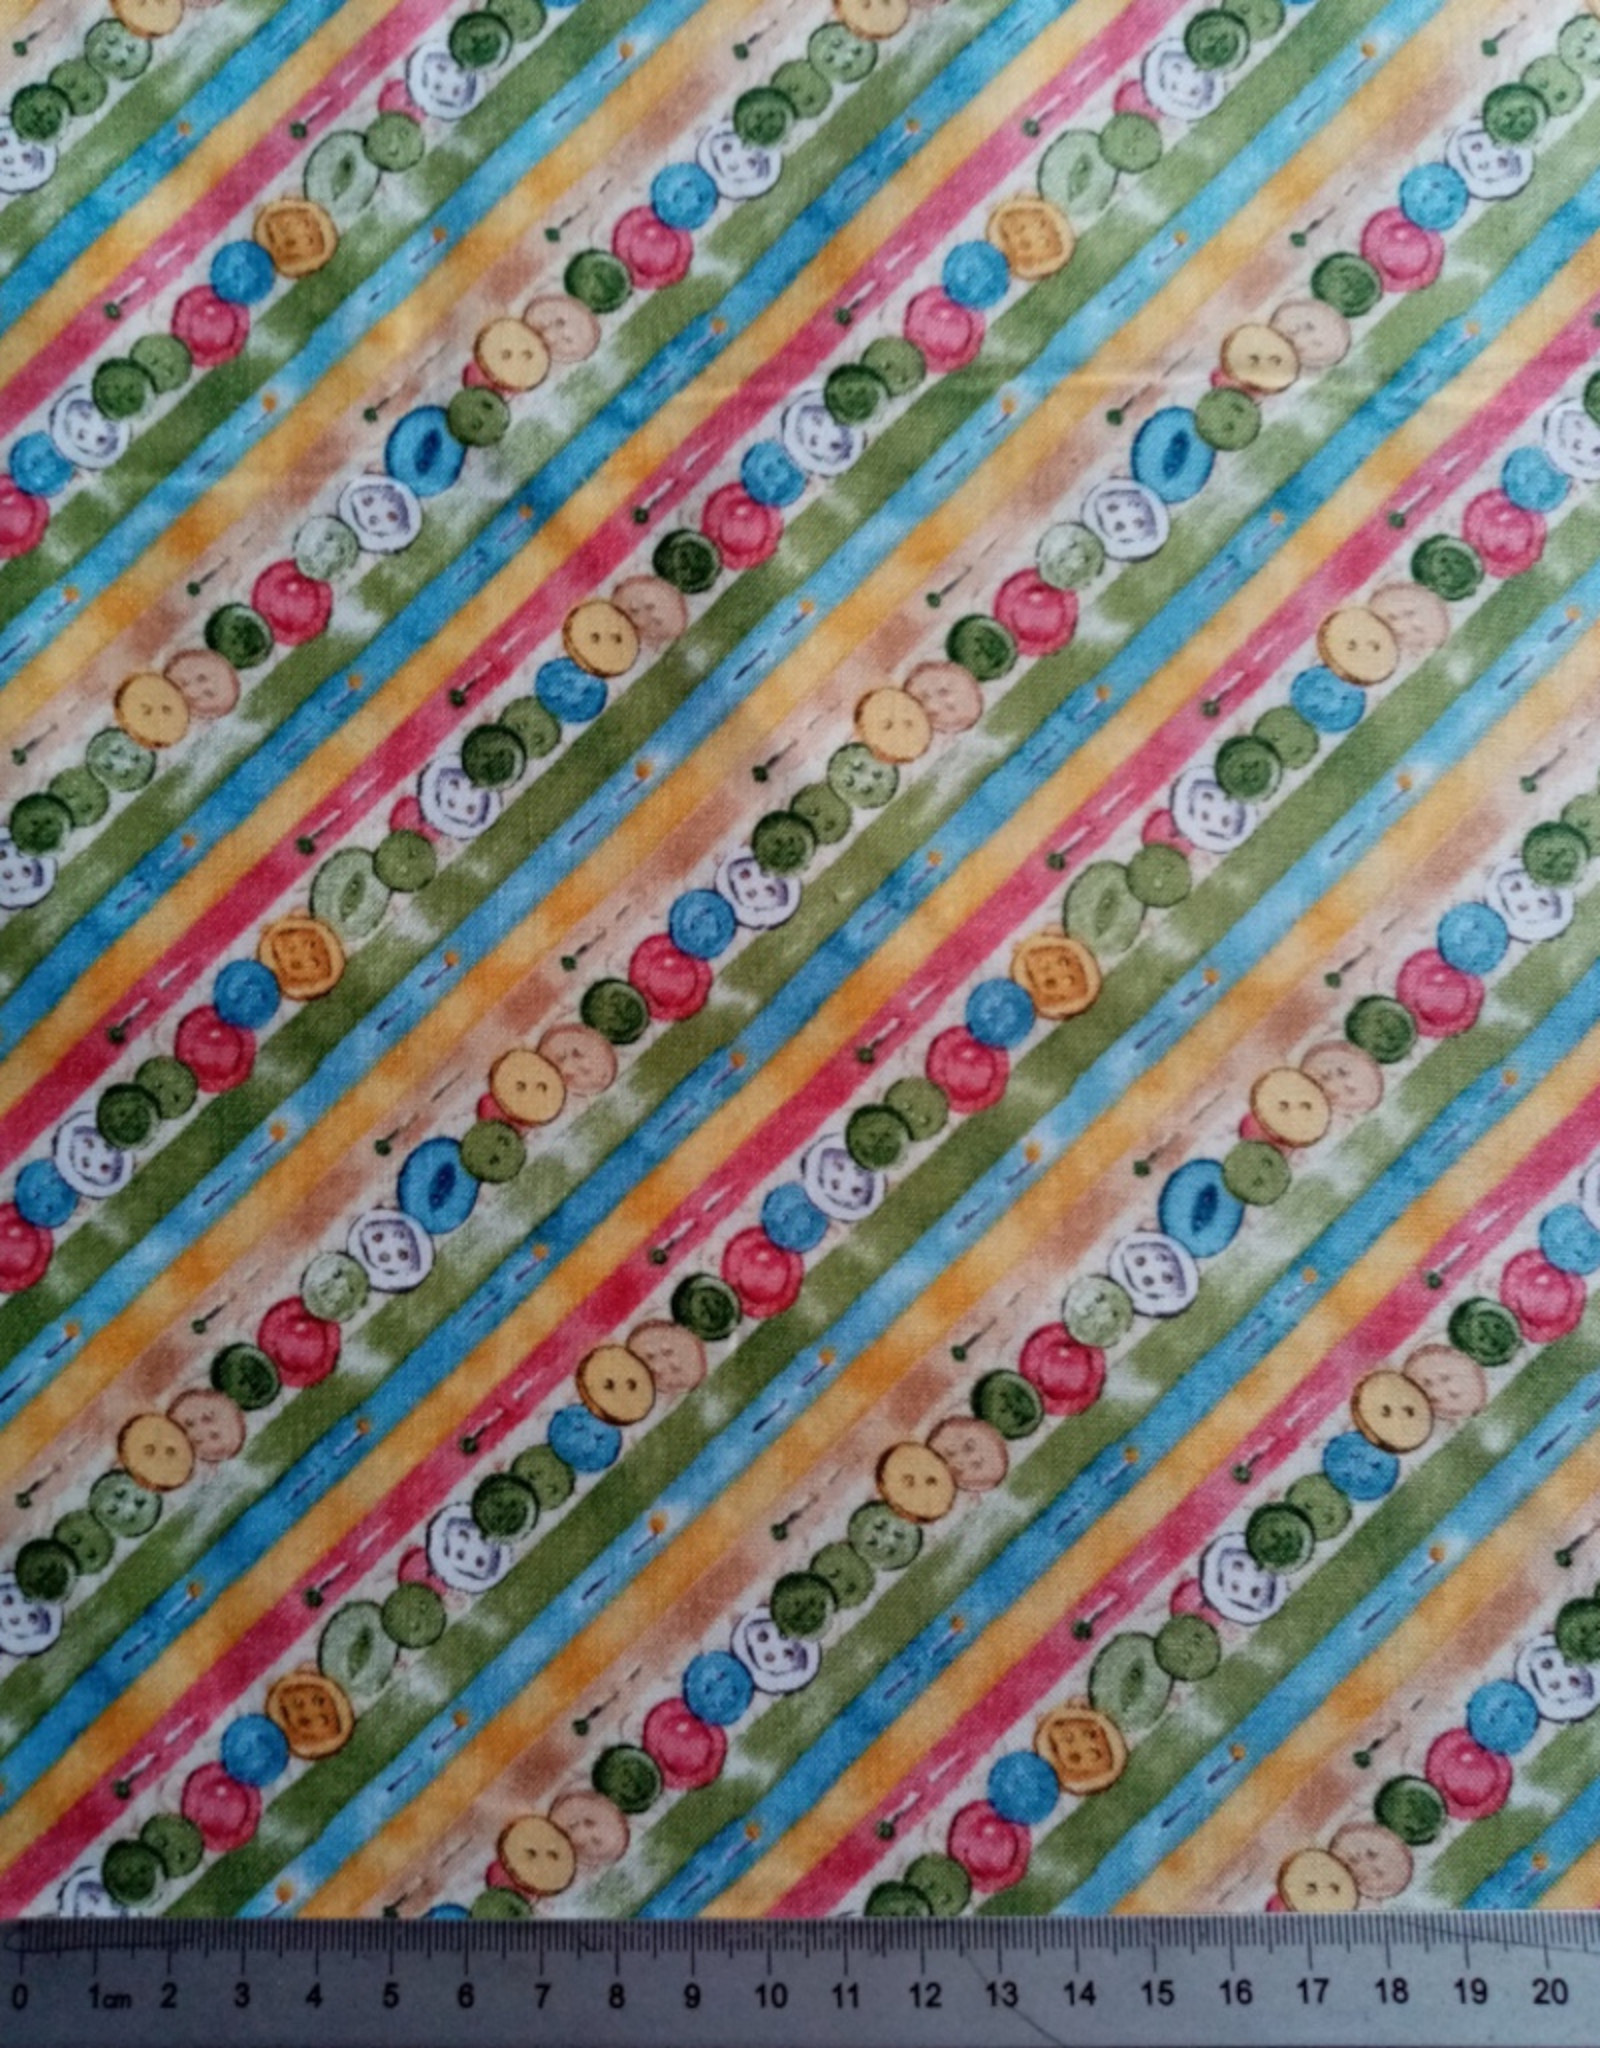 South Sea Imports 10 cm Quilting Pur-Fection